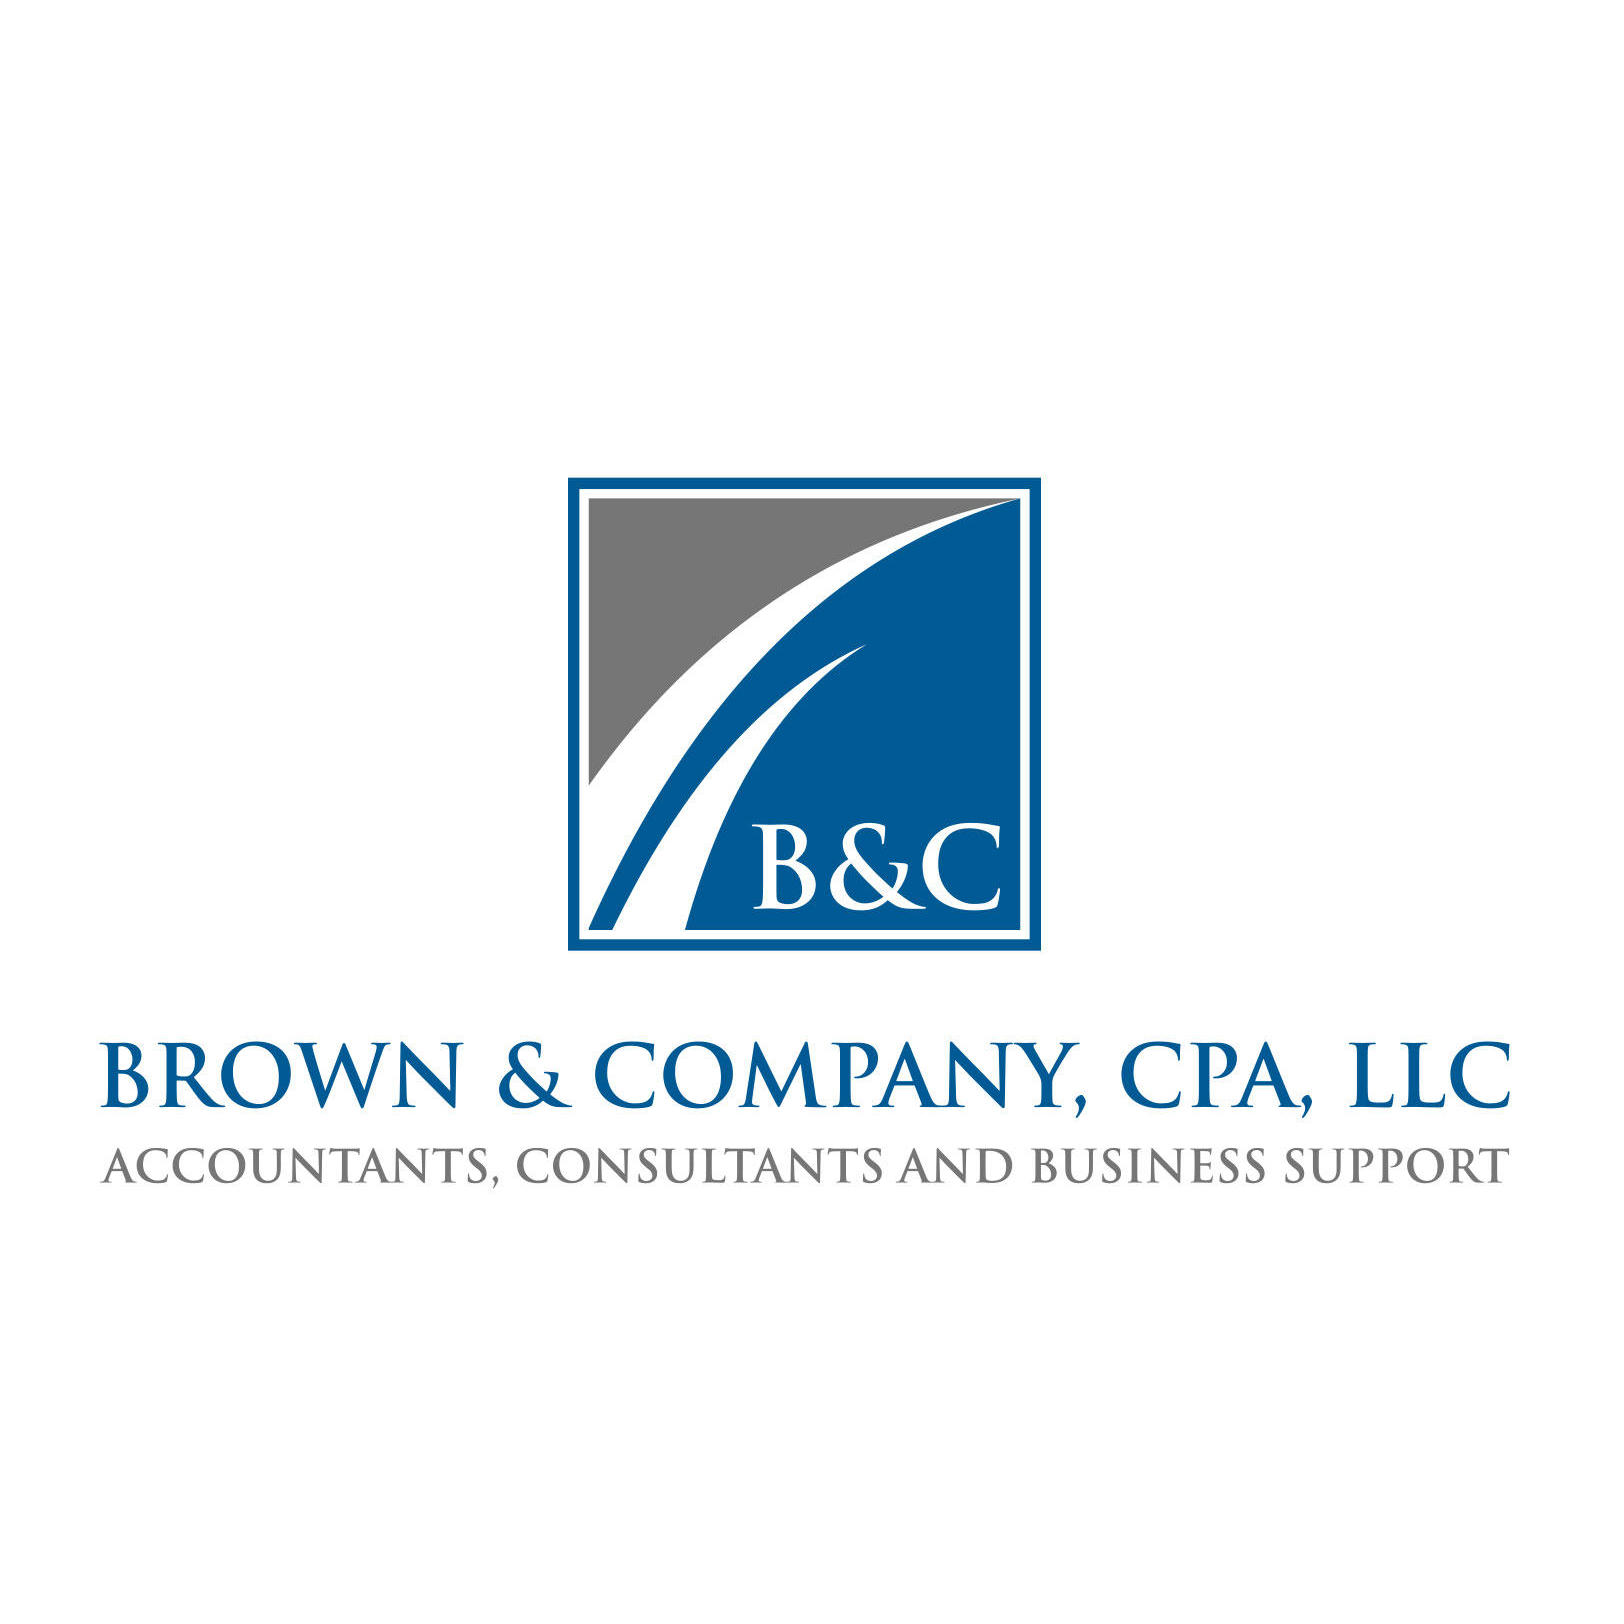 Brown and Company, CPA, LLC